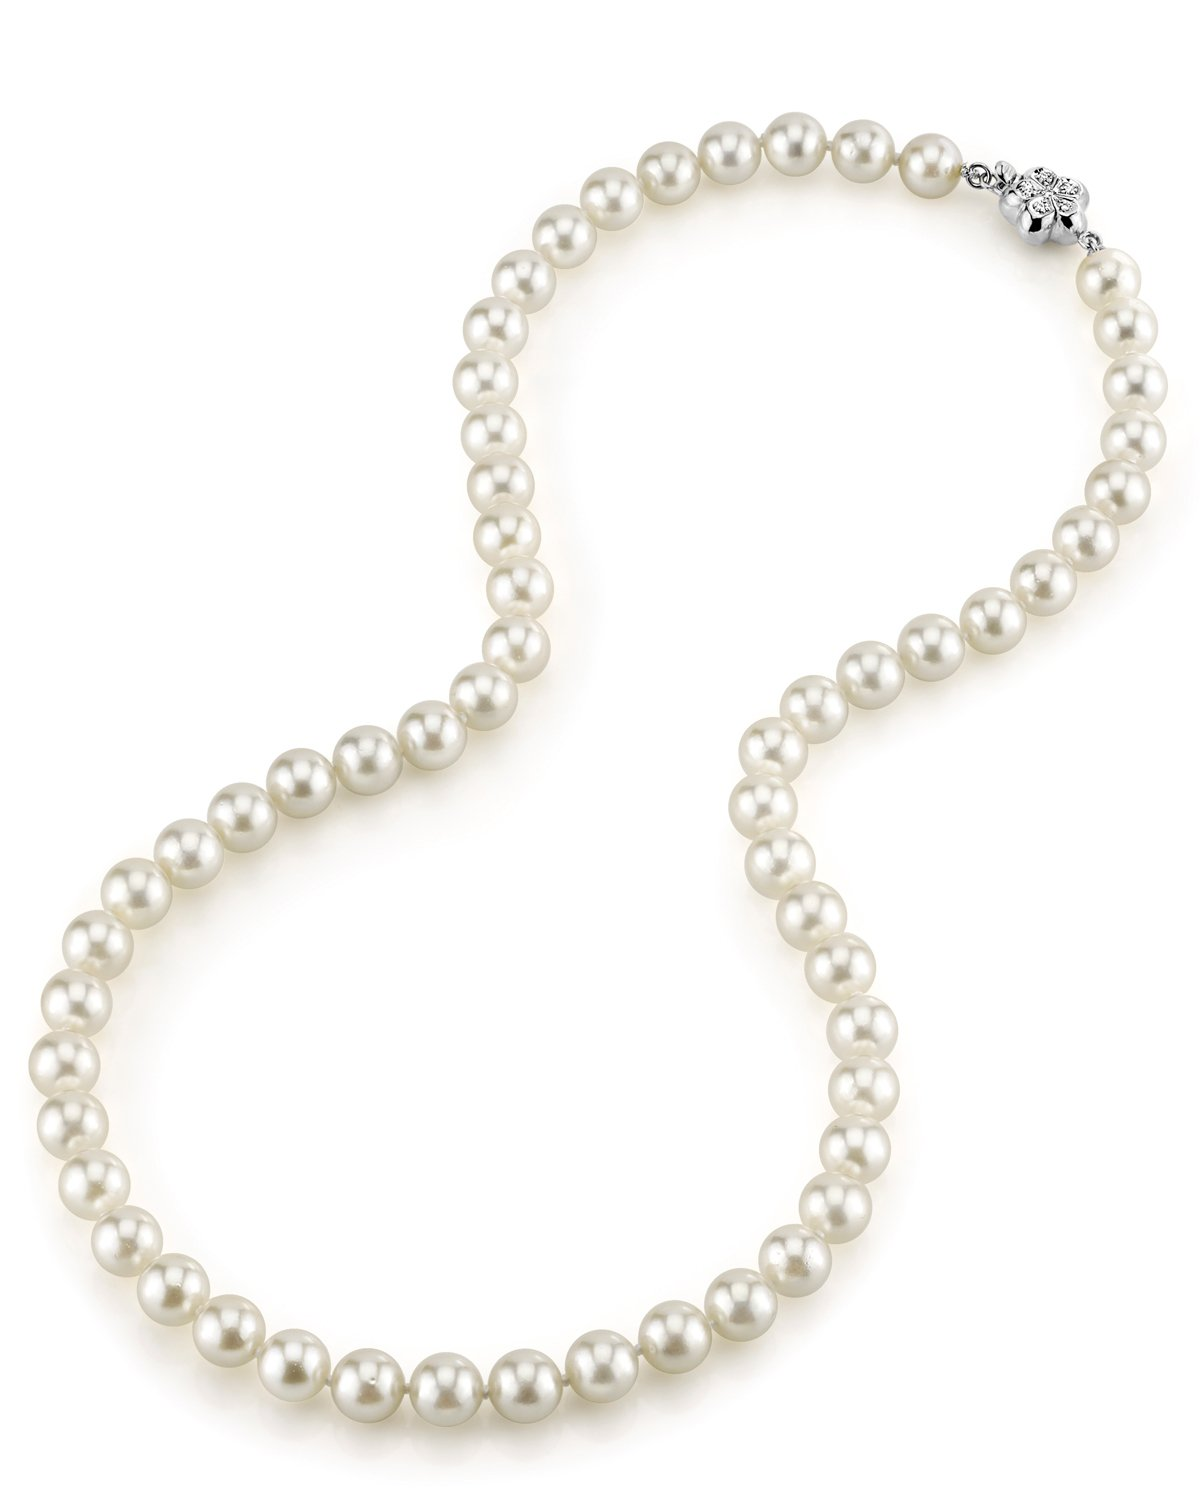 7.0-7.5mm Japanese Akoya White Choker Length Pearl Necklace- AAA Quality